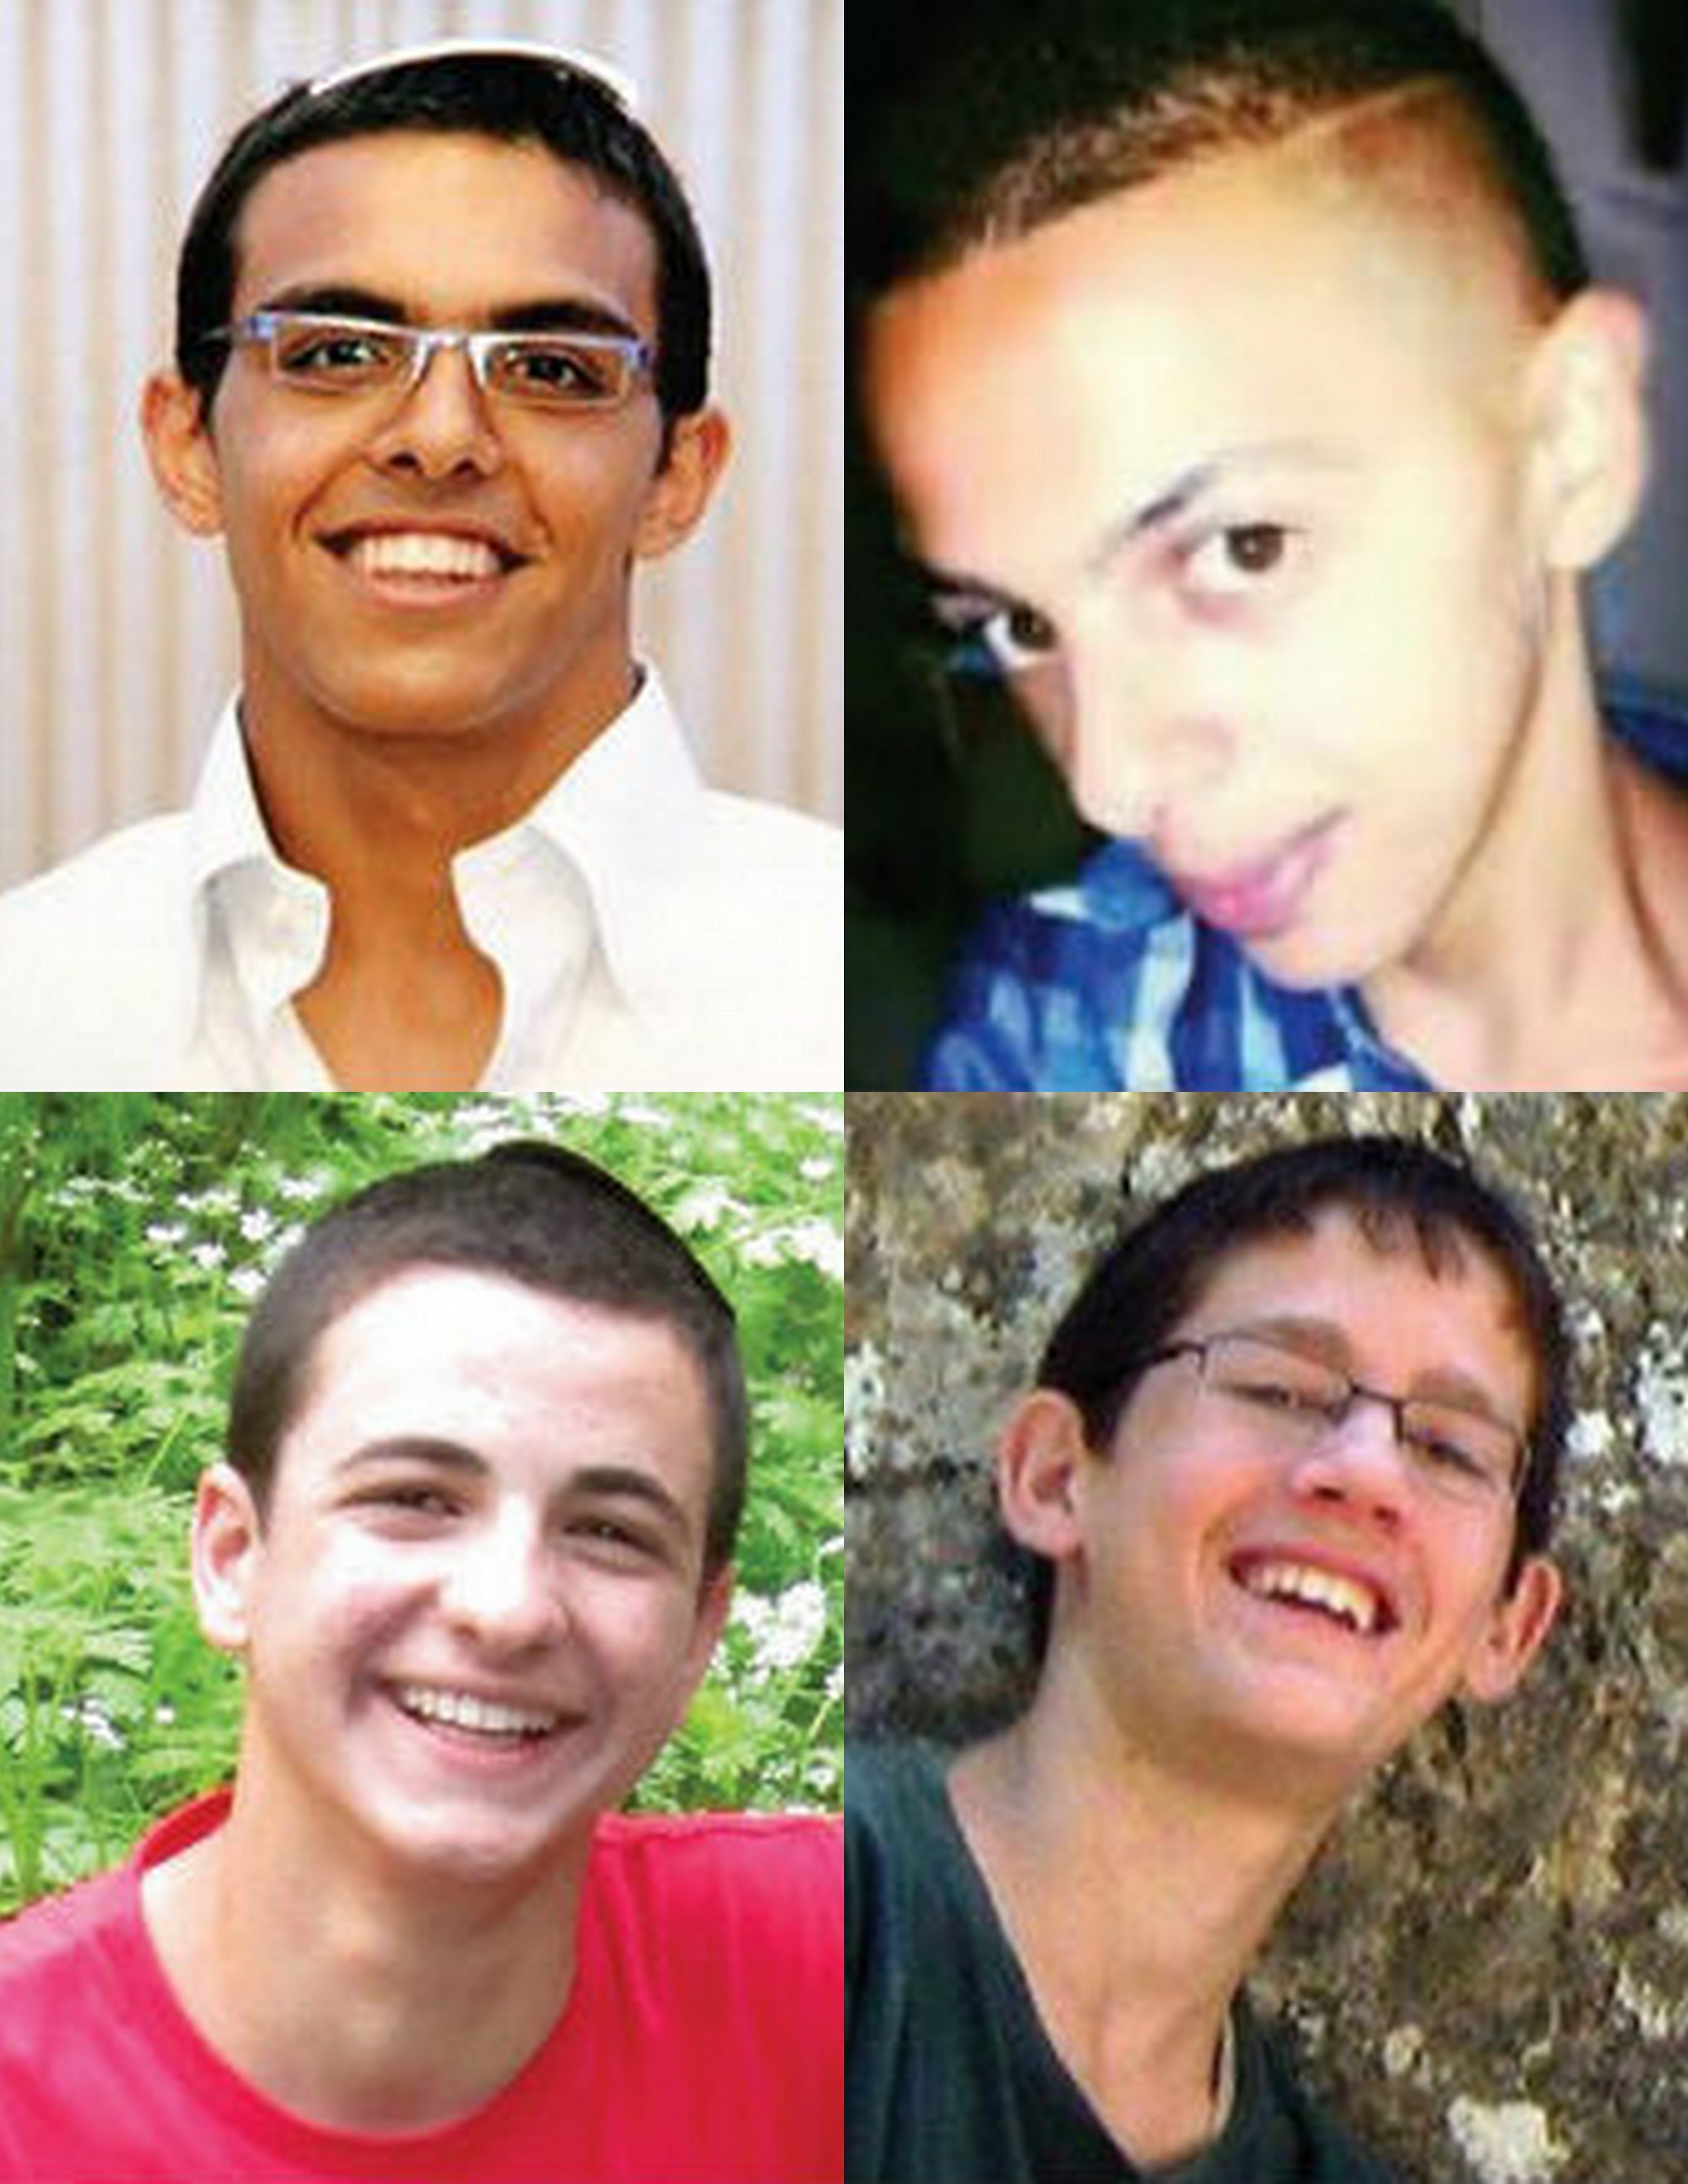 The four teenagers killed in the Israeli-Palestinian conflict will be commemorated at Manhattanville College.